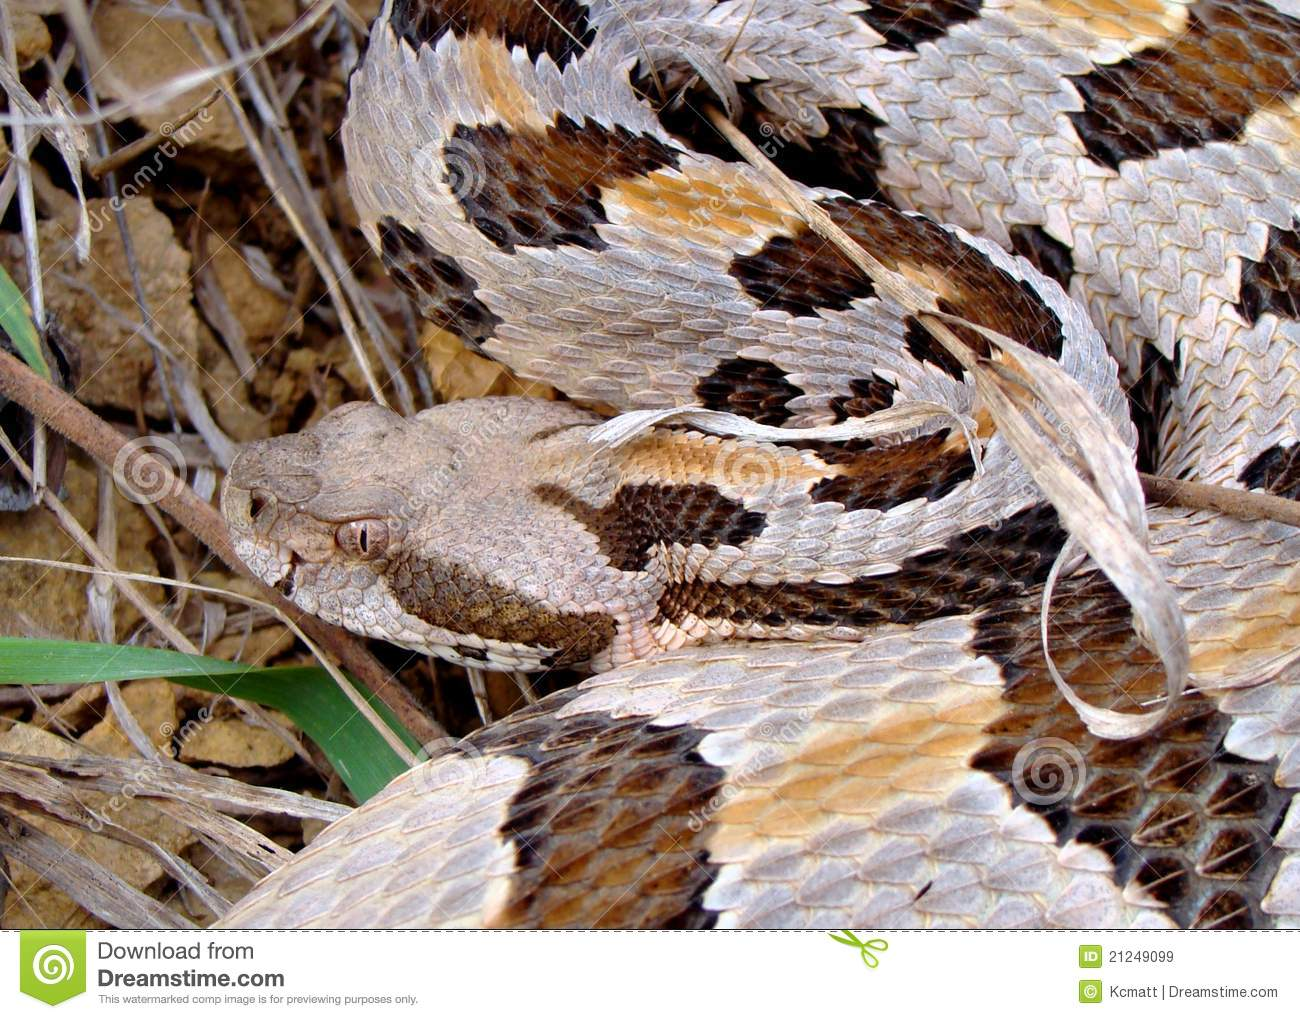 Timber Rattlesnake Striking